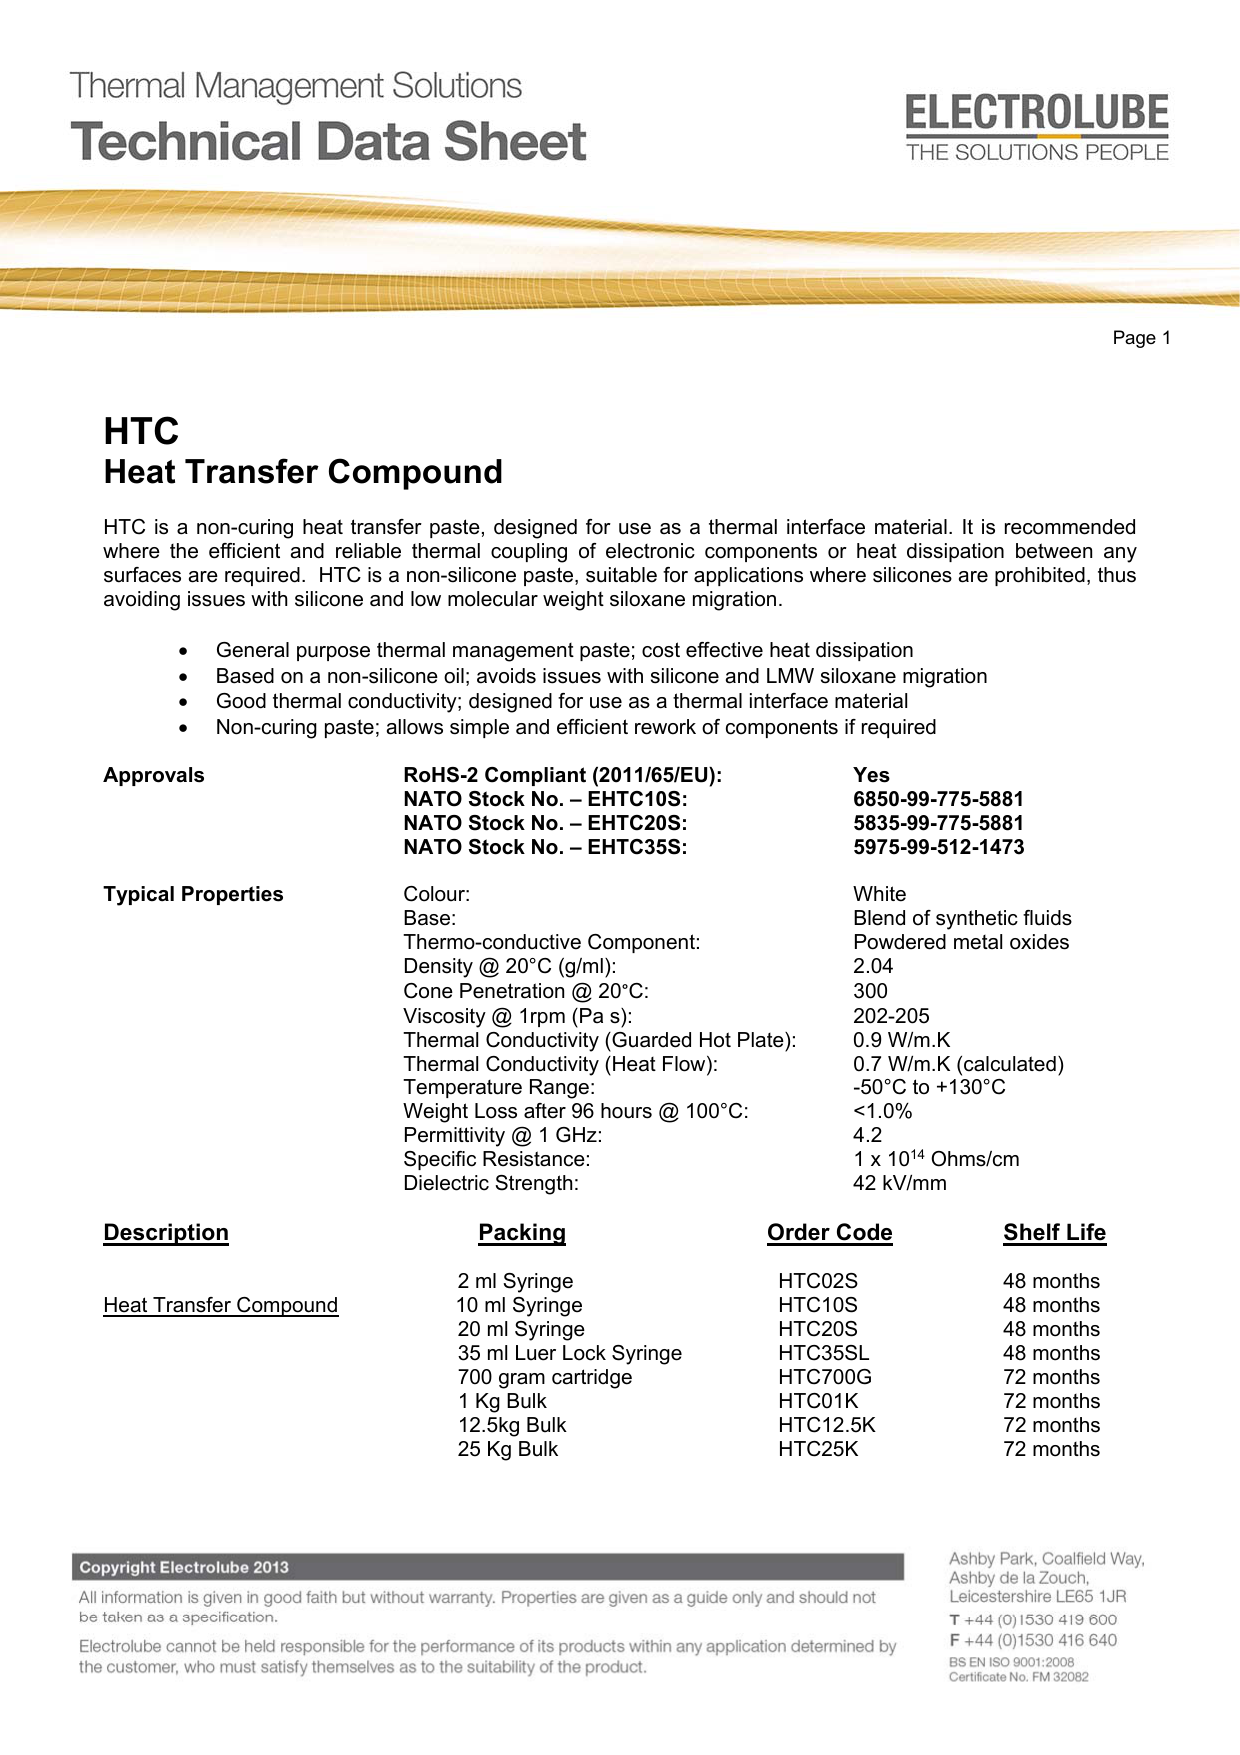 HTC Heat Transfer Compound